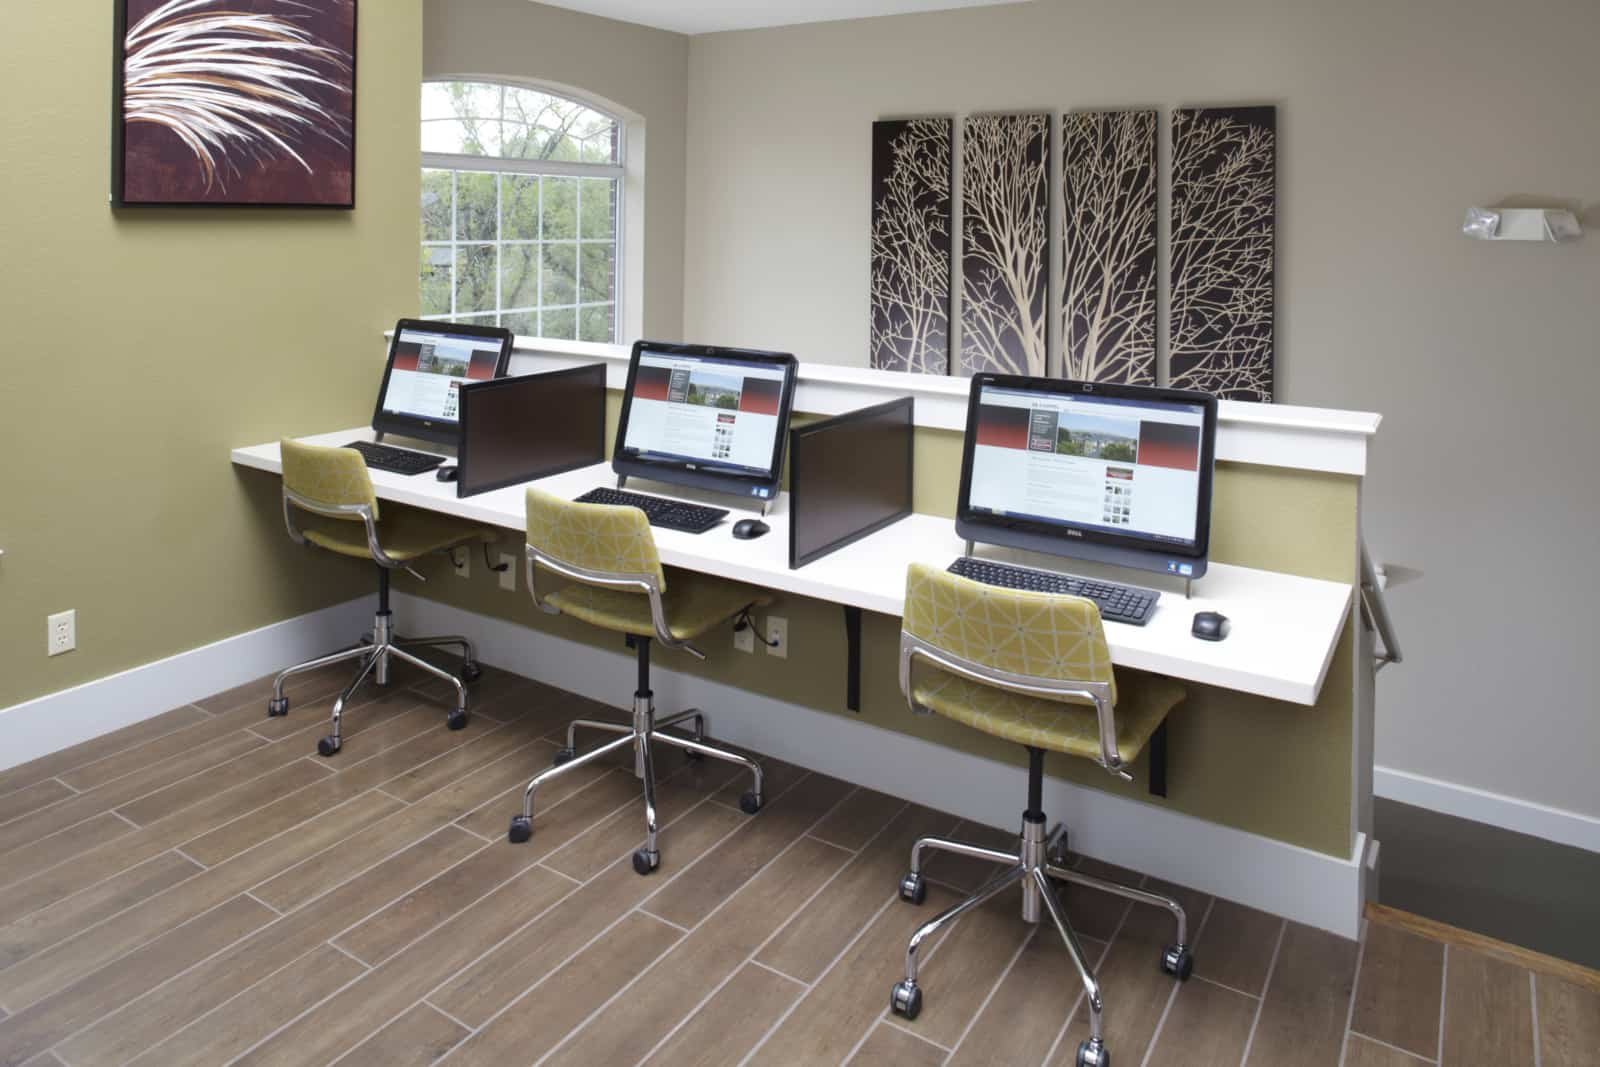 Business center with 3 computers in a row.